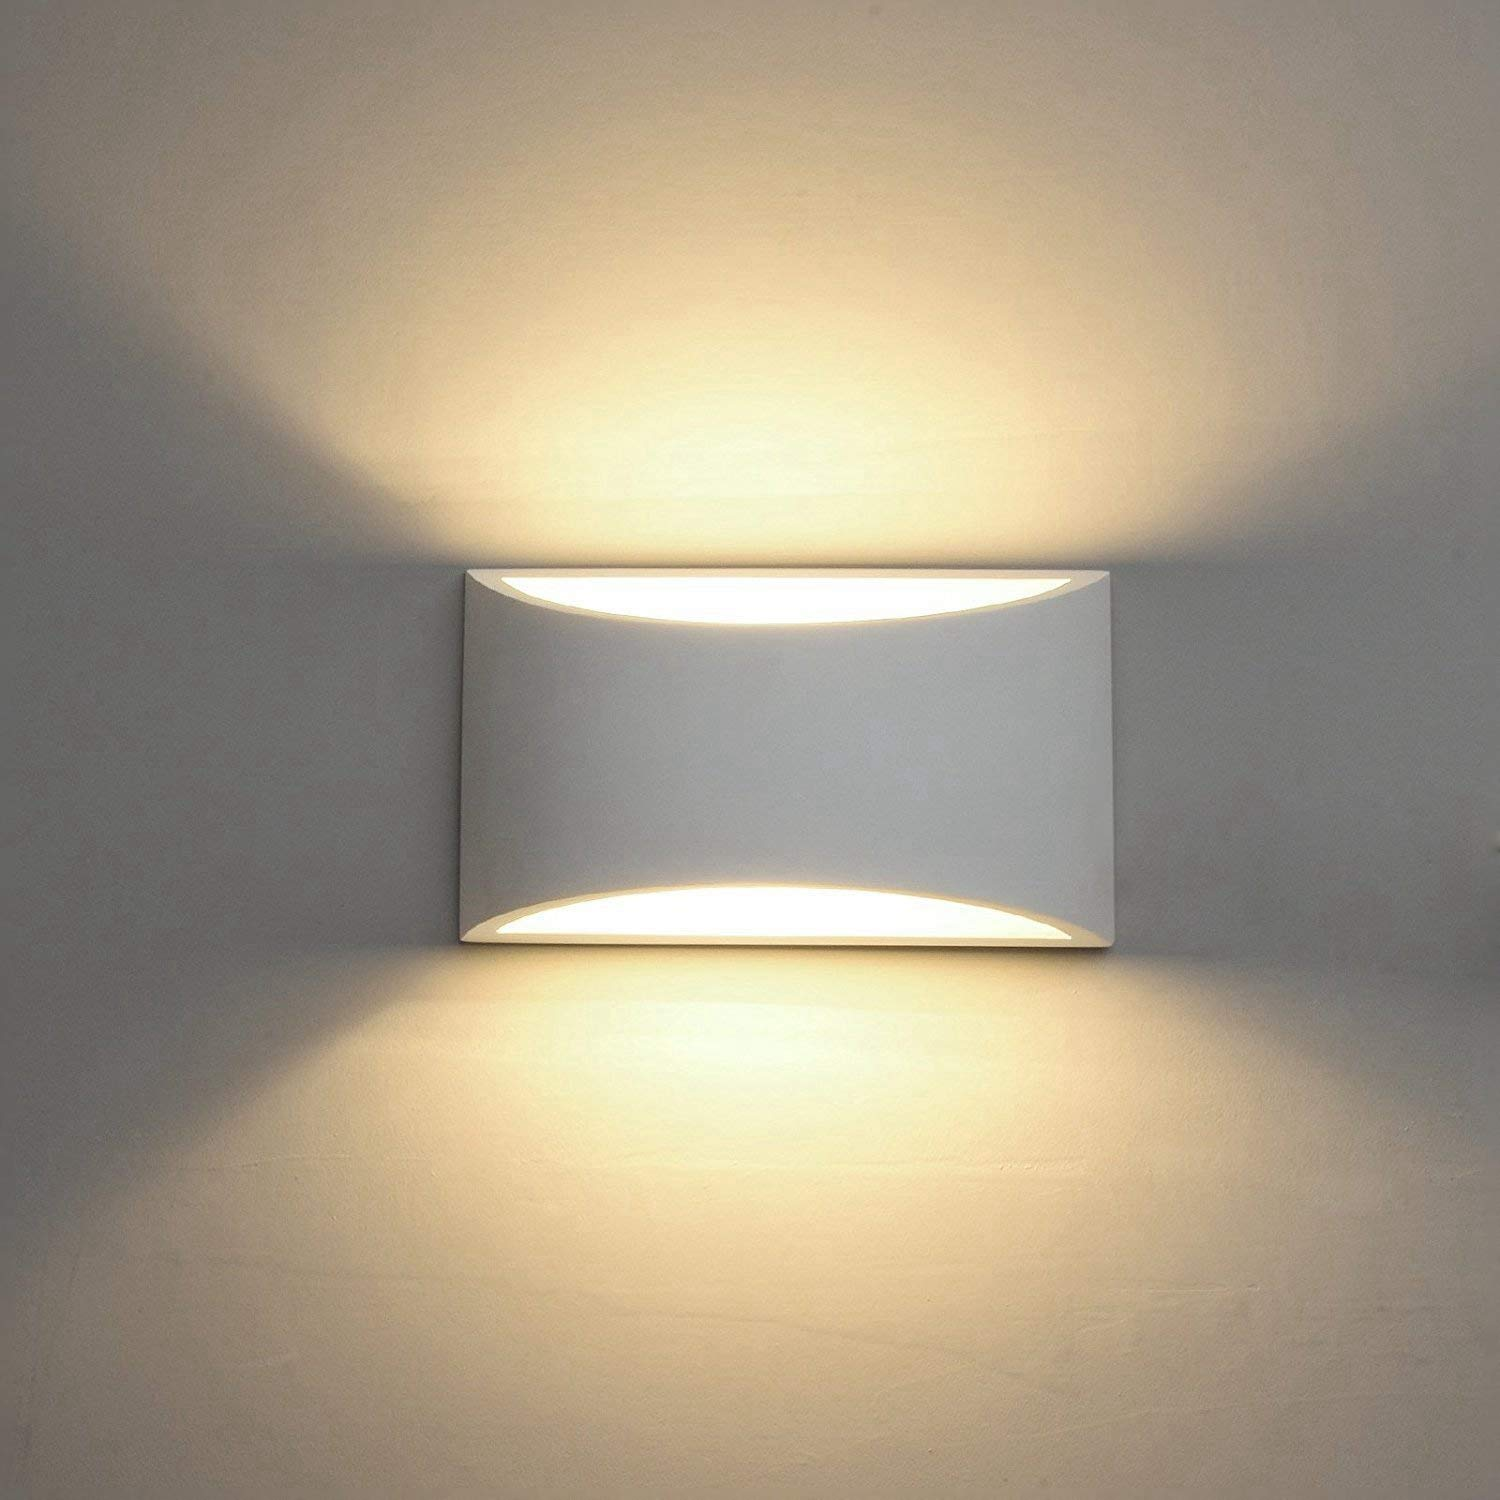 Lighting Fixture Plaster Conservatory Dimmable